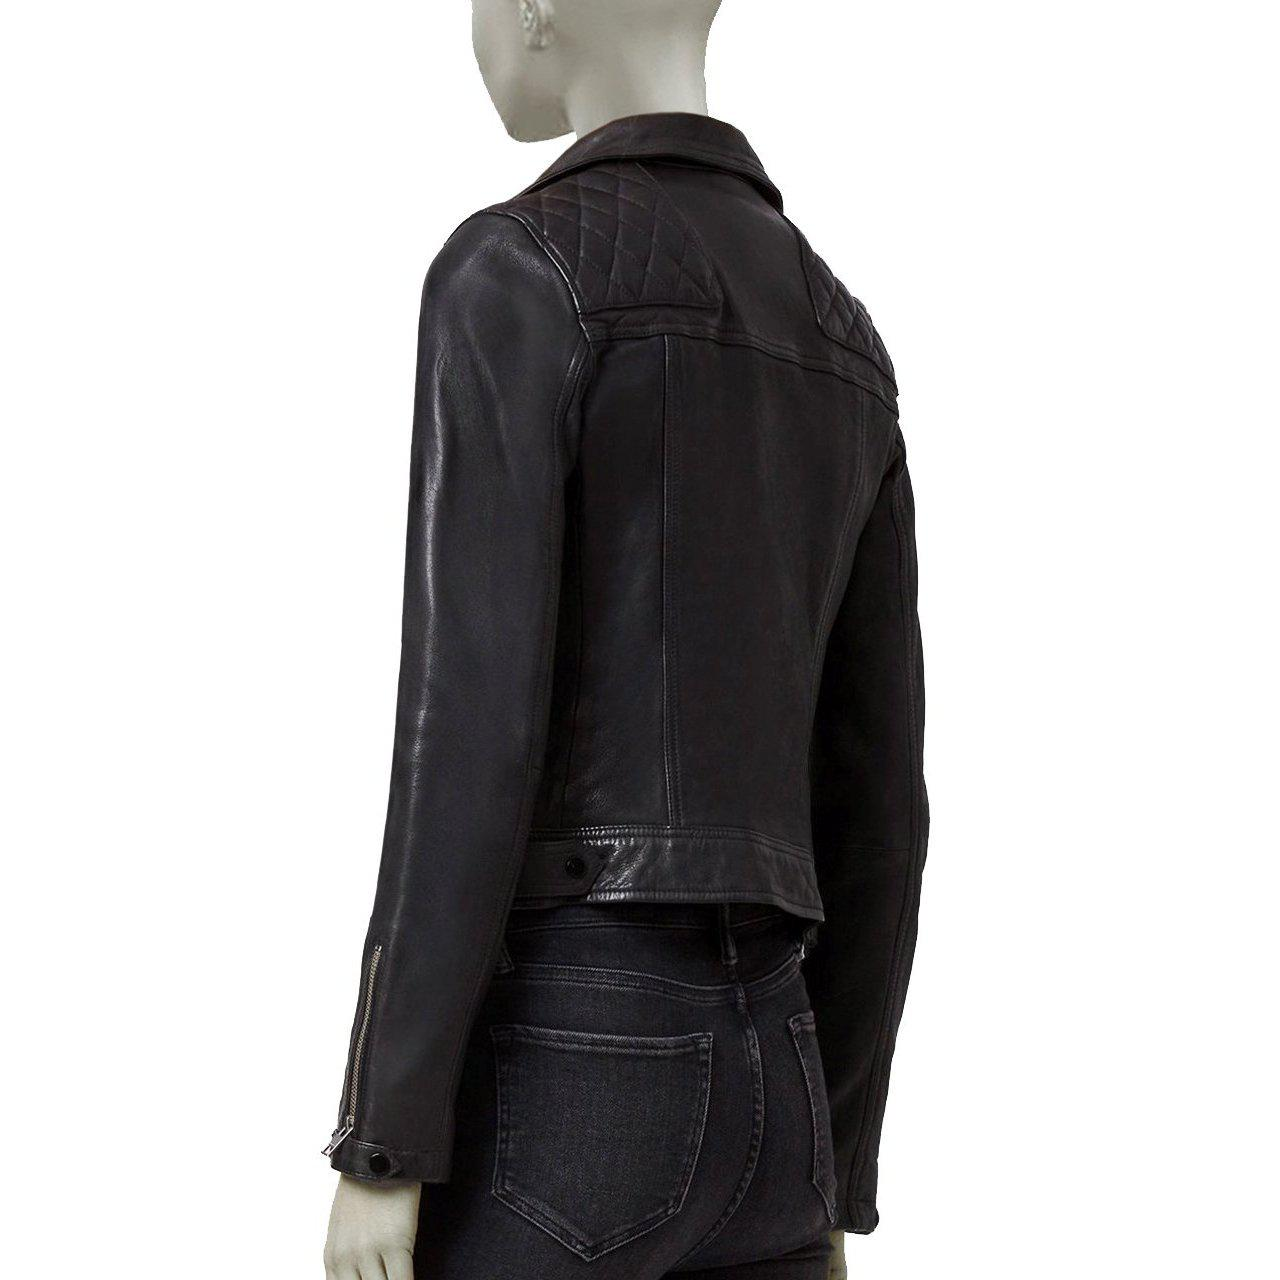 BIKER LEATHER JACKET WITH SQUARE PATTERN ON SHOULDER FOR WOMEN - Leather Jacket